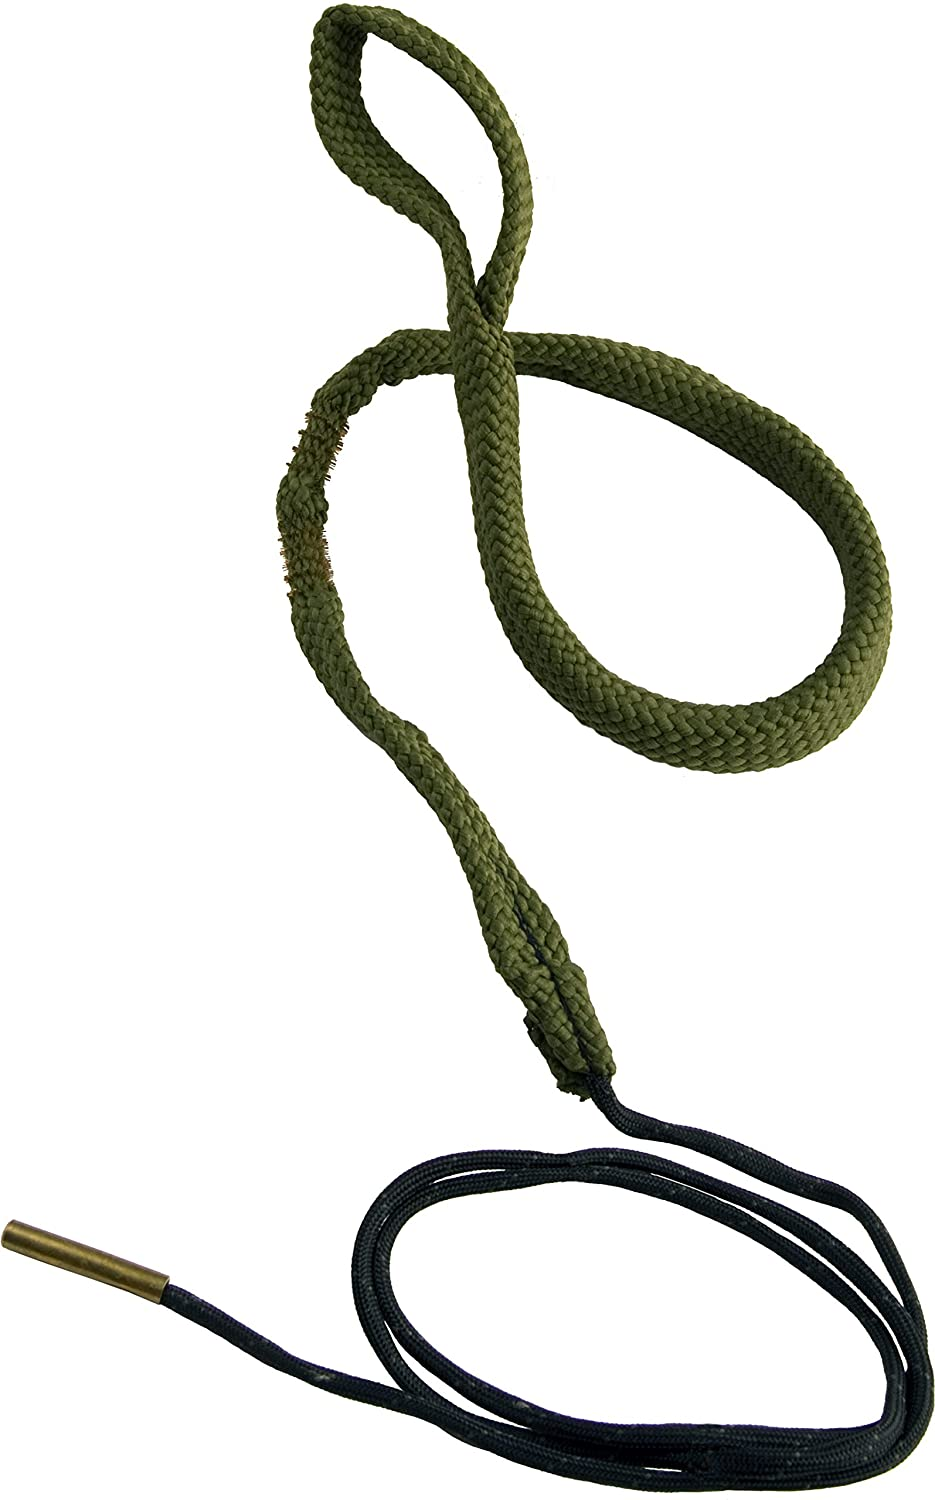 Hoppe's BoreSnake is a fantastic time-saving tool for effectively field-cleaning your weapon.